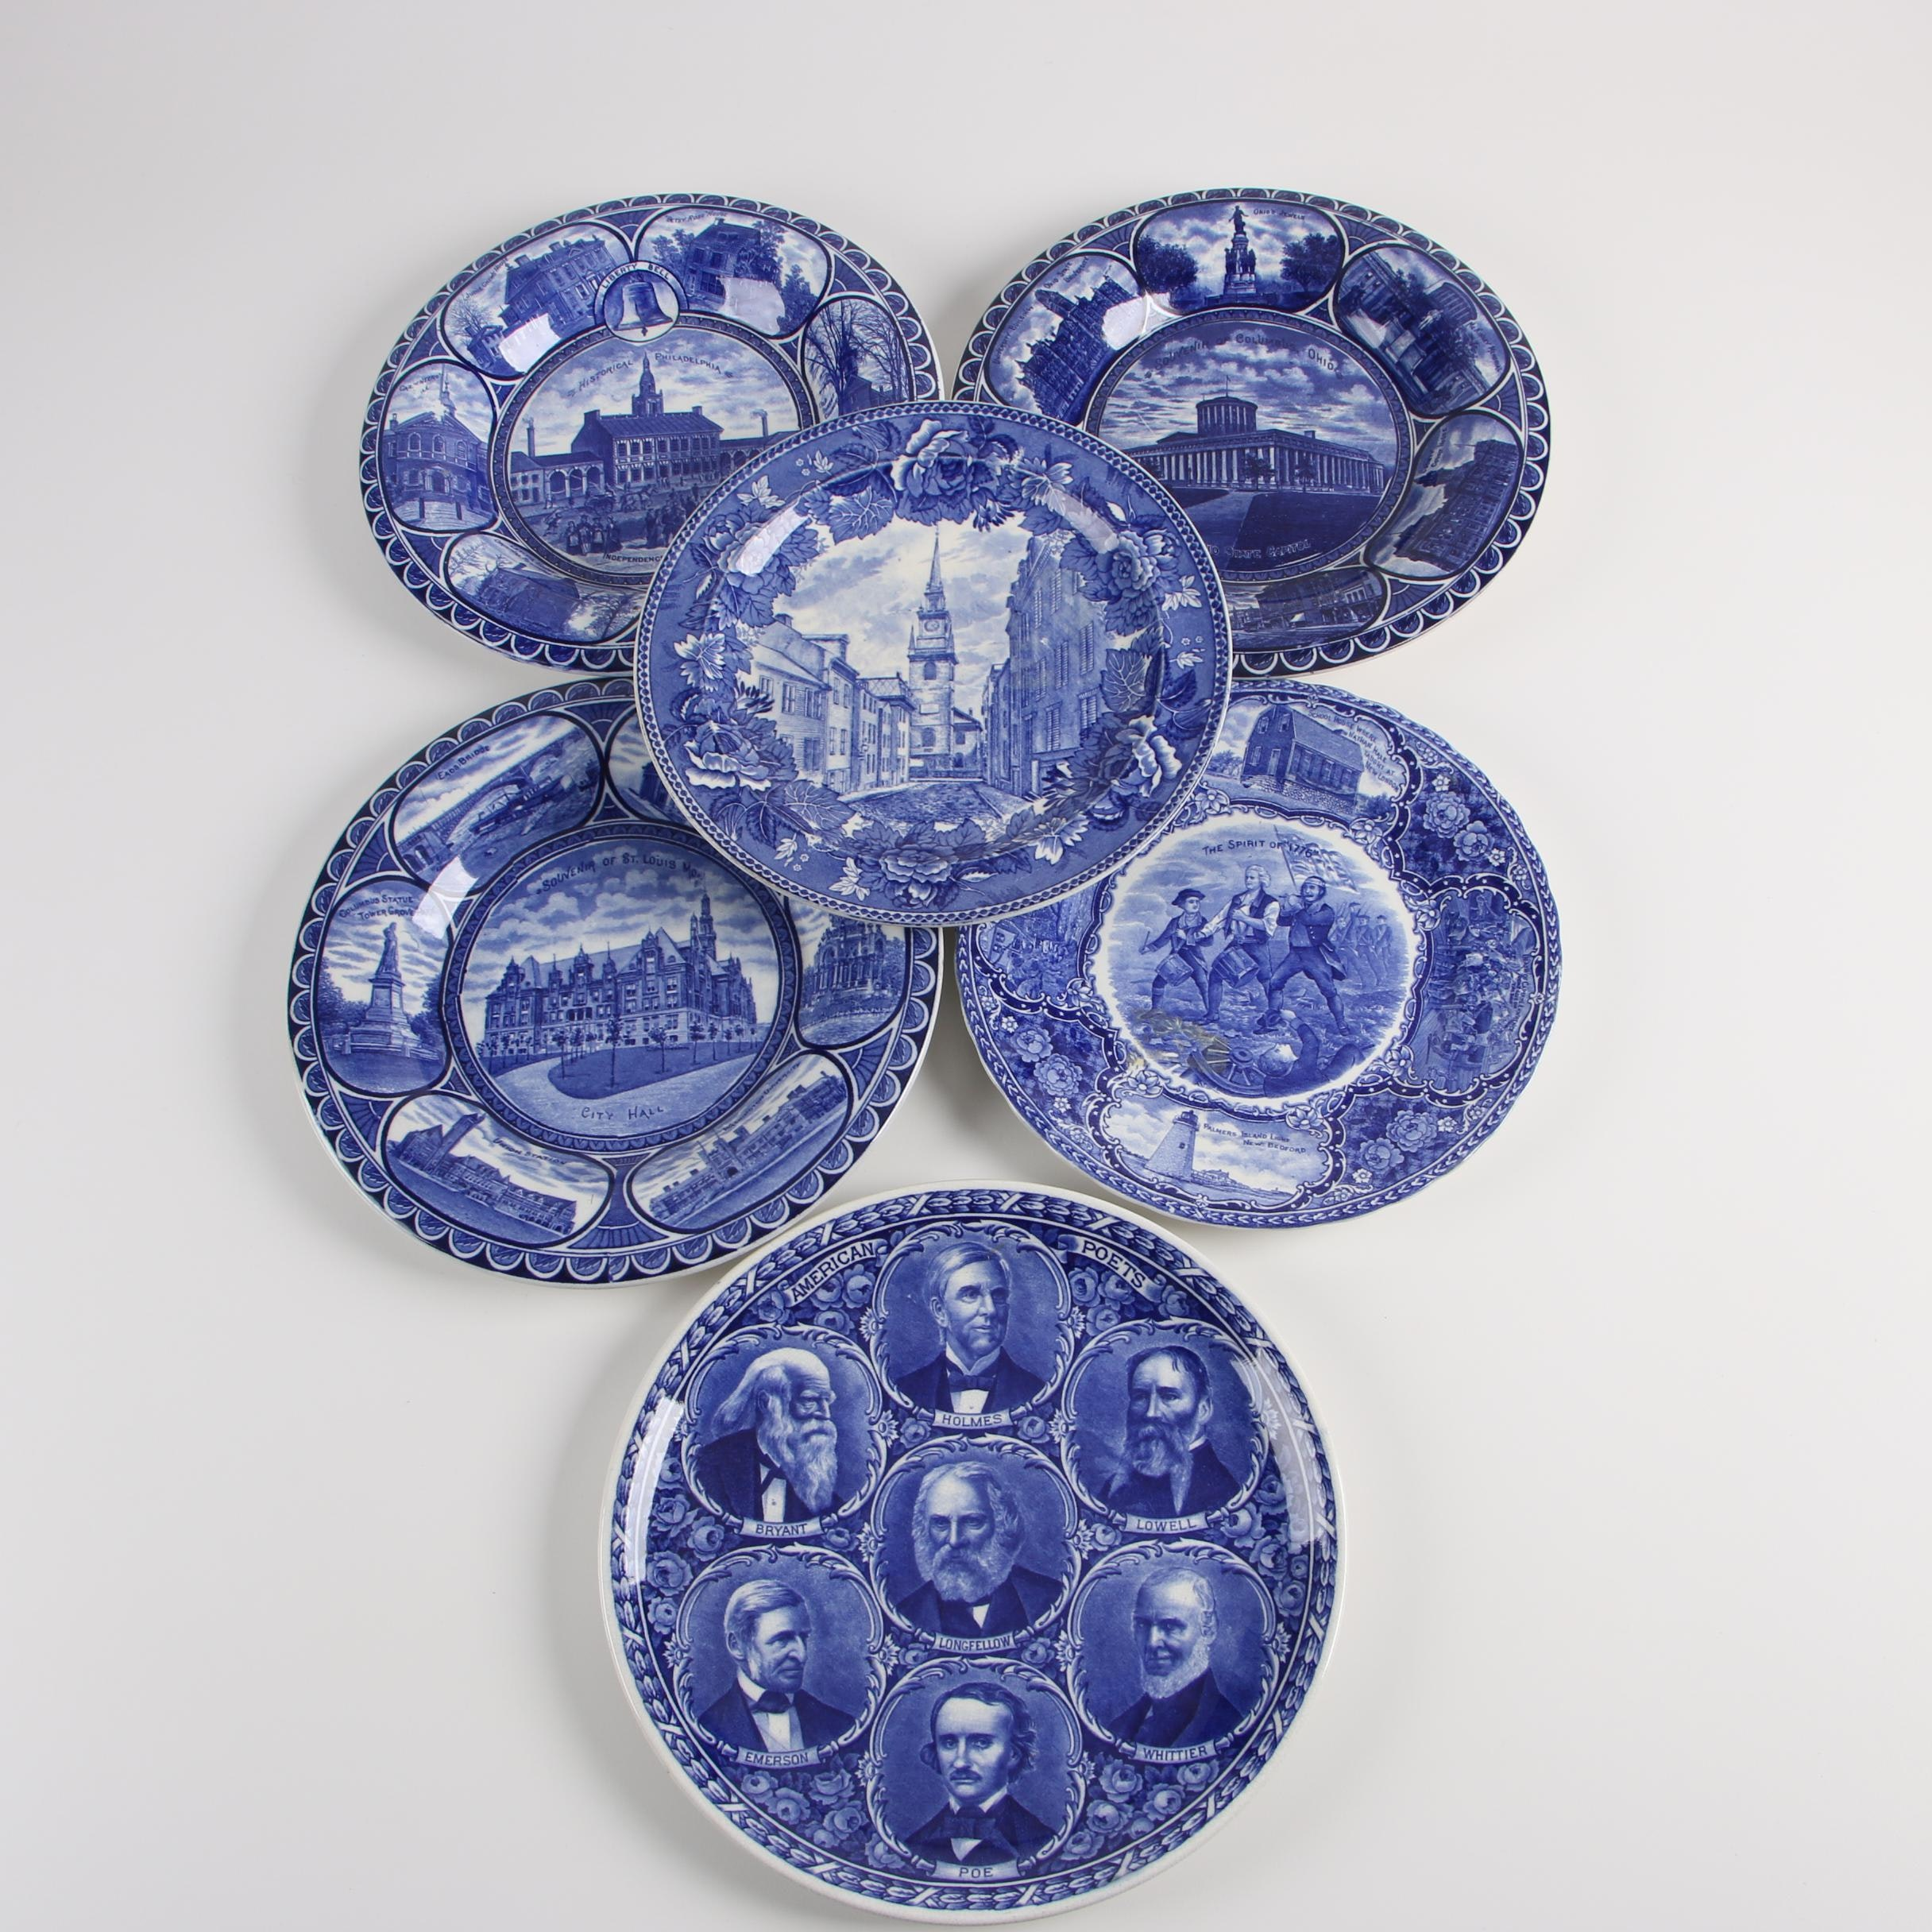 Rowland & Marsellus Historical Blue Staffordshire Transfer-Printed Plates